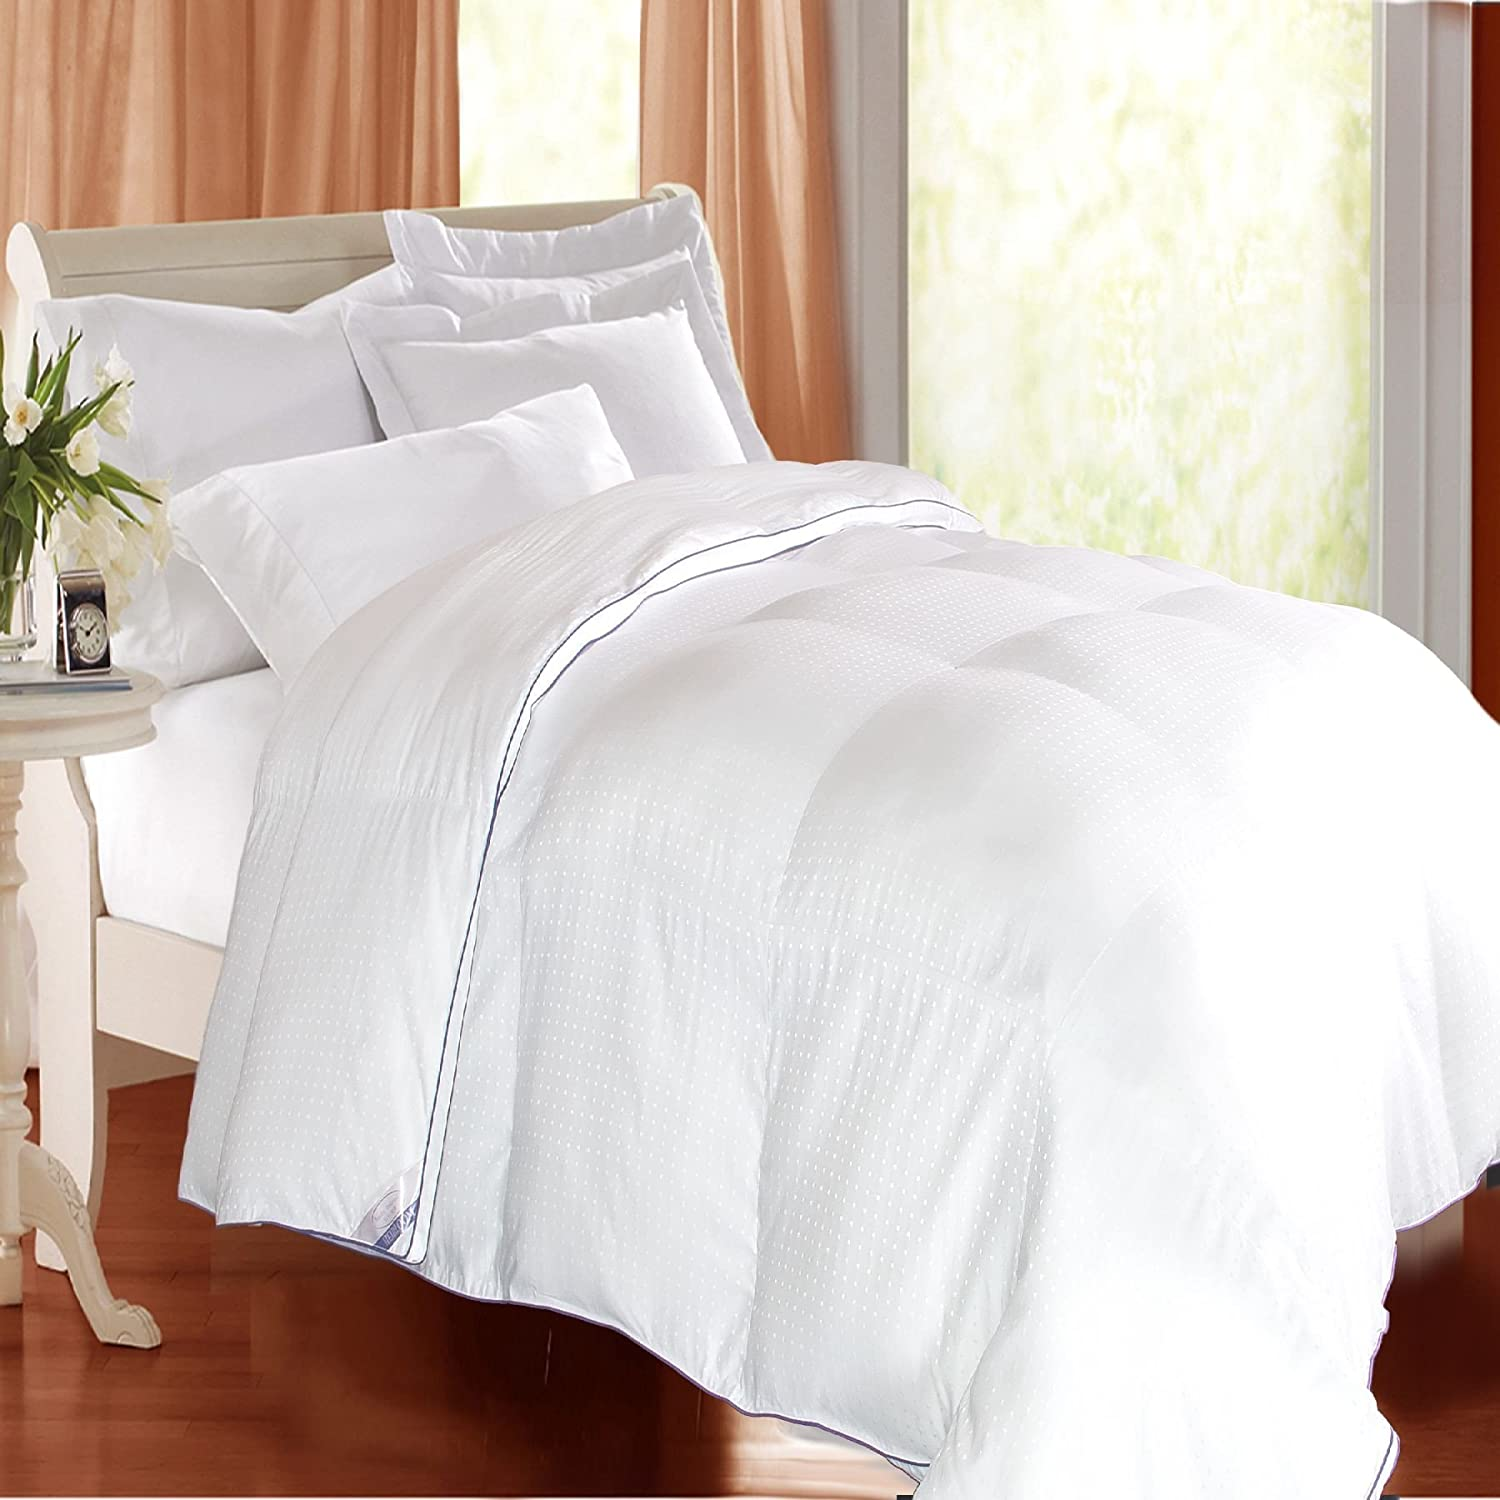 a and s in comforter between vs material duvet comparison whats down cover blanket set dohar difference what